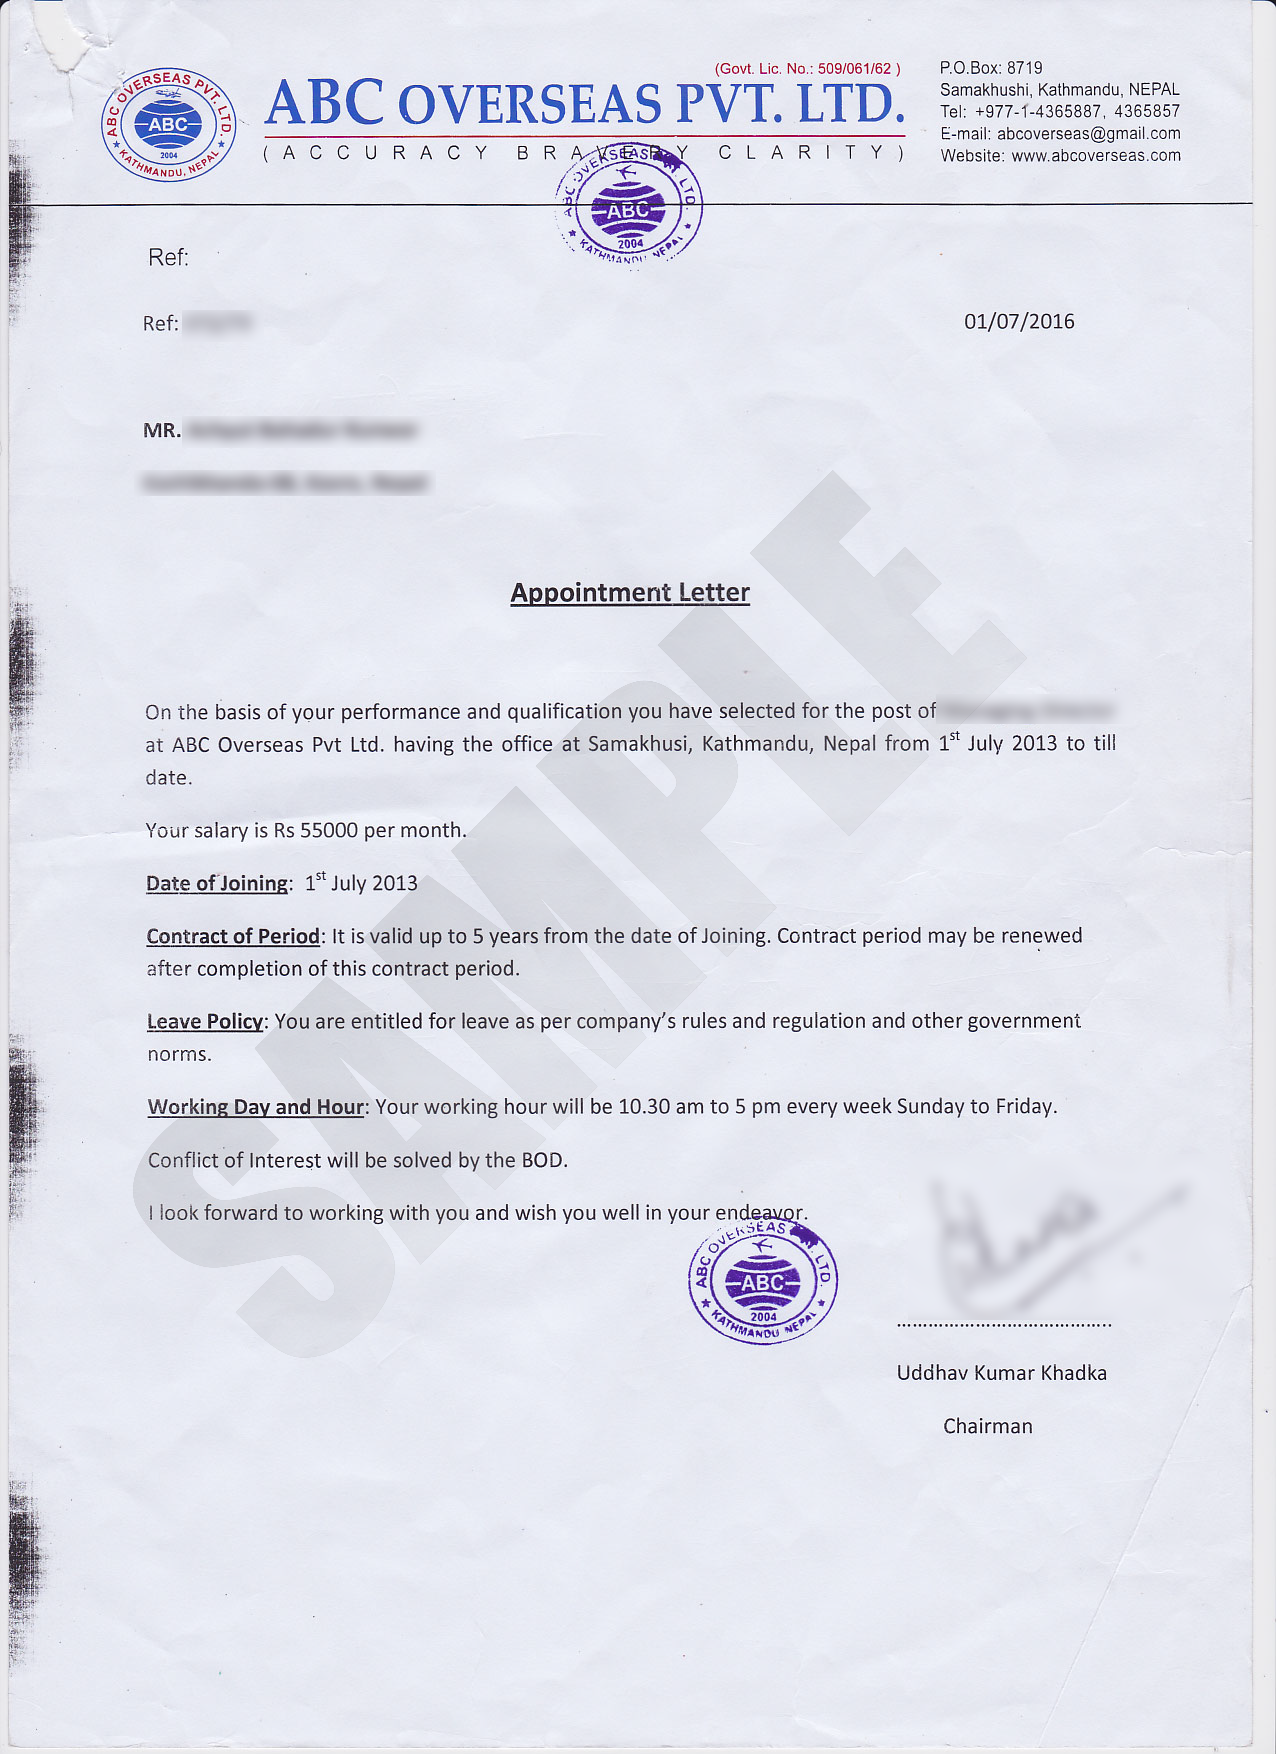 Salary certificate kiec salary certificate sample 1 thecheapjerseys Image collections